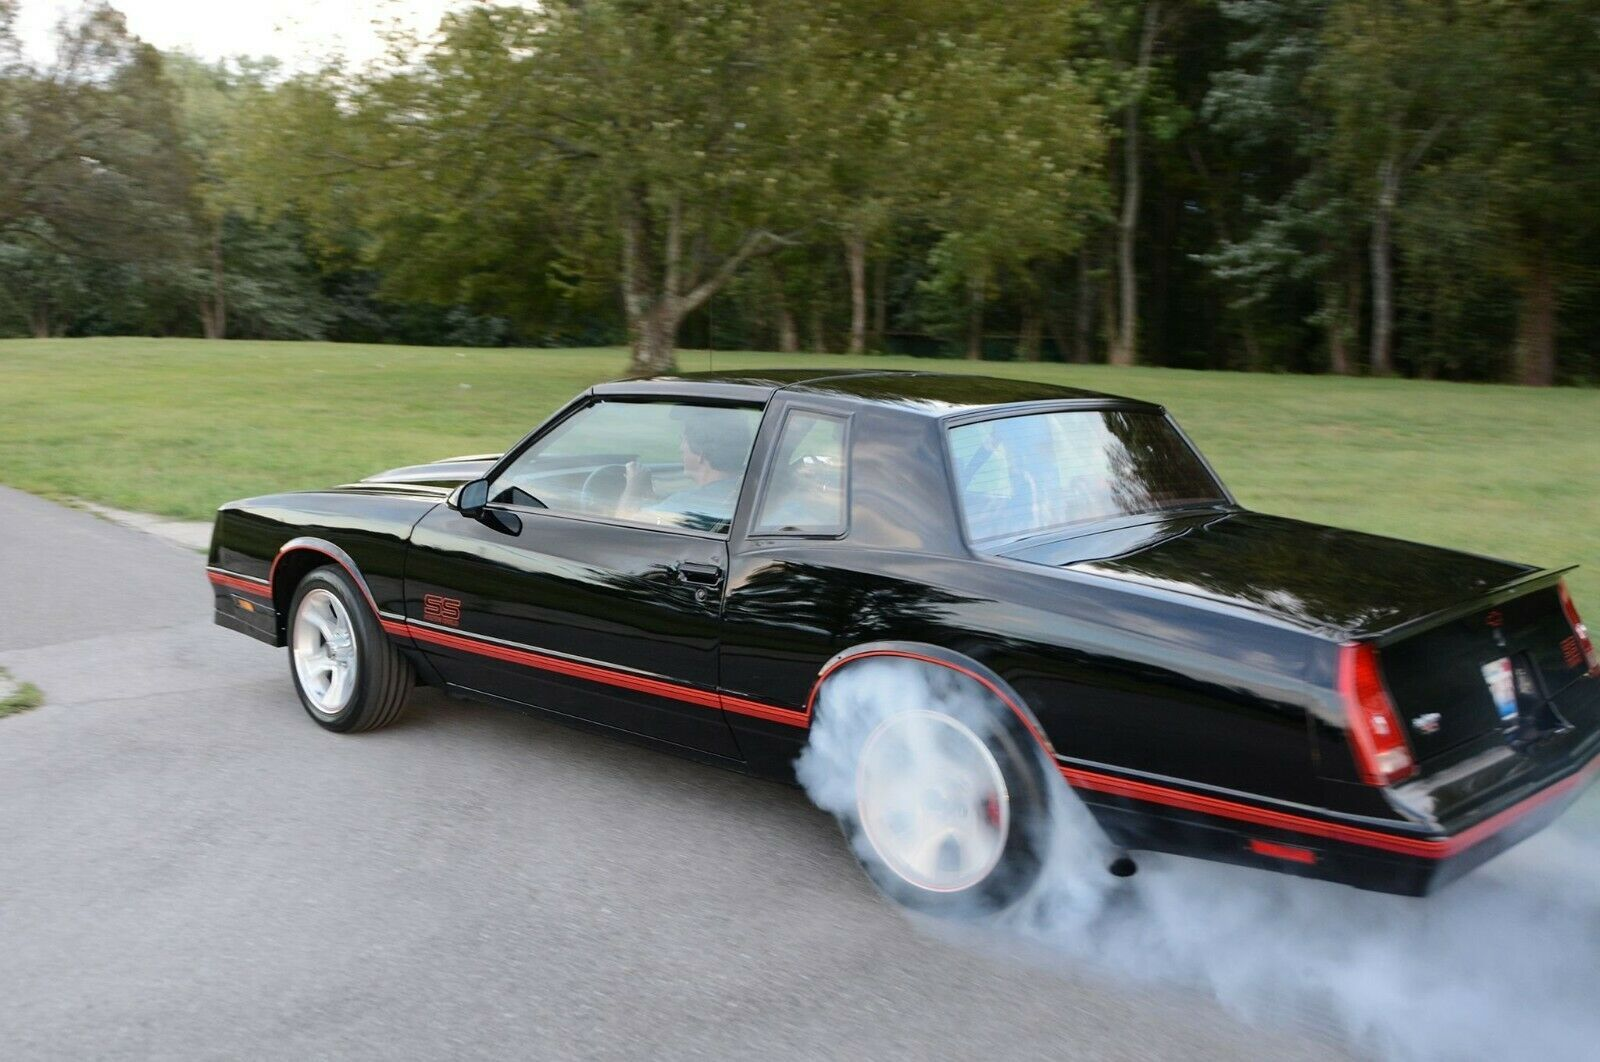 Primary image for 1988 Chevy Monte Carlo SS burnout | 24X36 inch poster | Great looking!